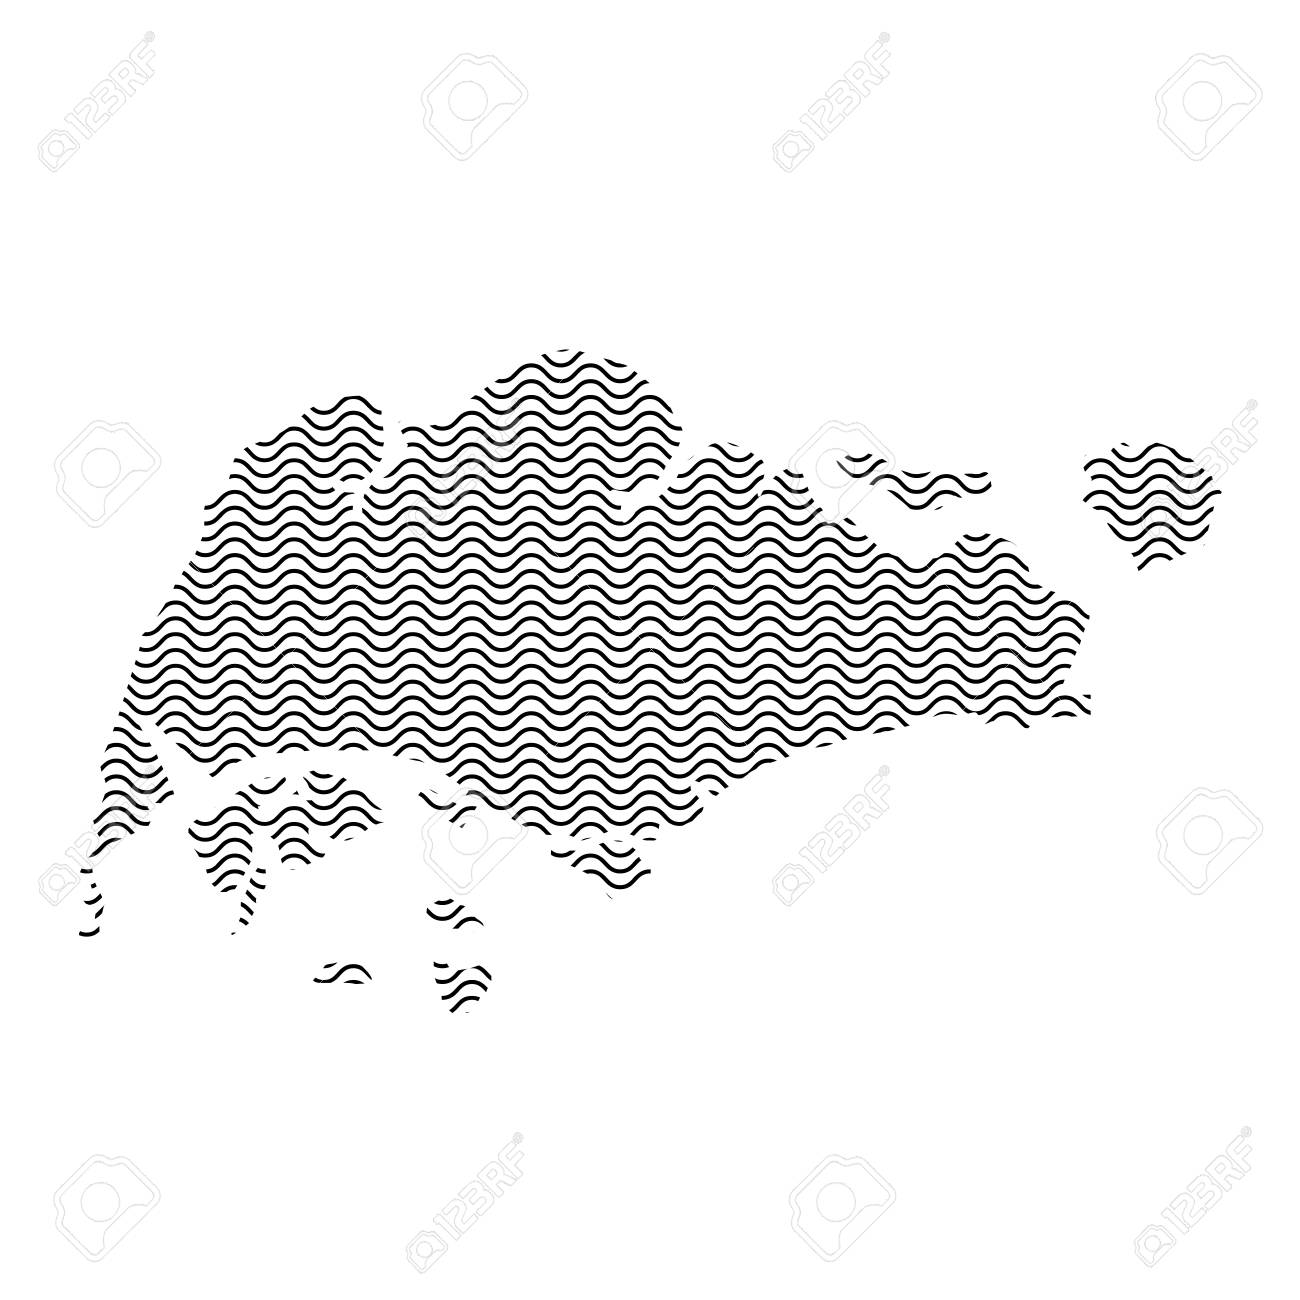 Singapore Map Country Abstract Silhouette Of Wavy Black Repeating ...